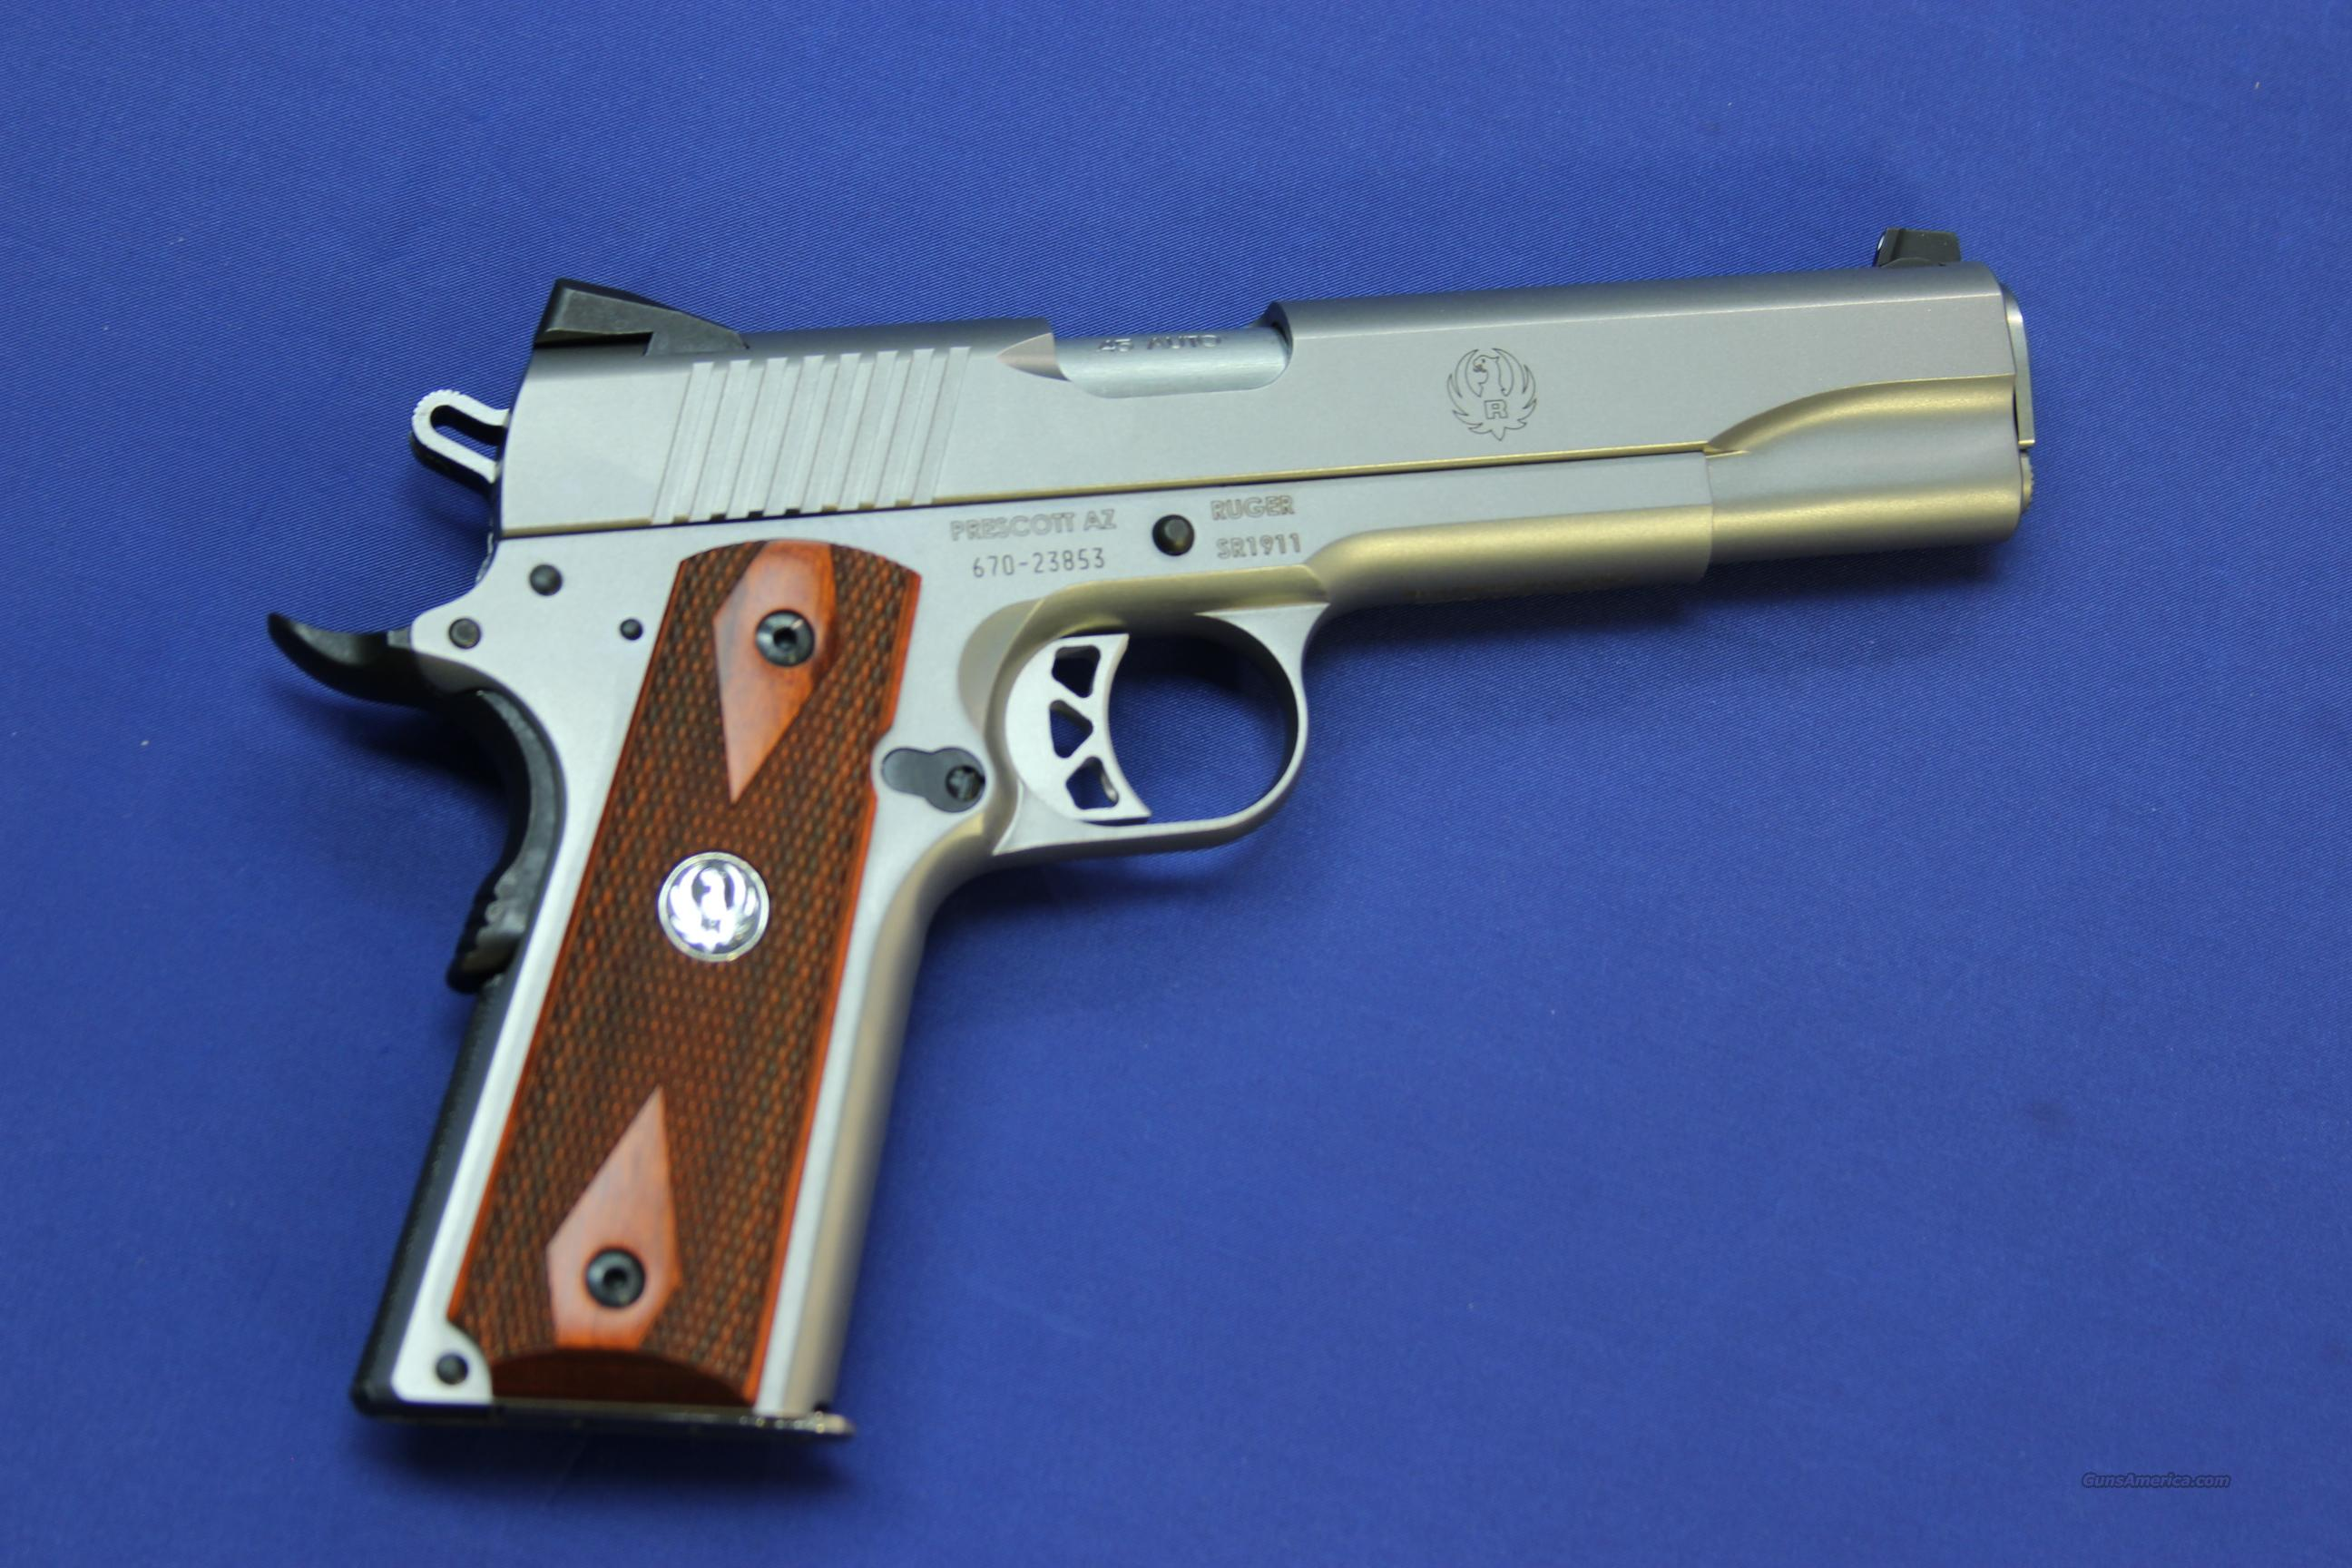 RUGER SR1911 STAINLESS .45 ACP - NEW!  Guns > Pistols > Ruger Semi-Auto Pistols > SR9 & SR40